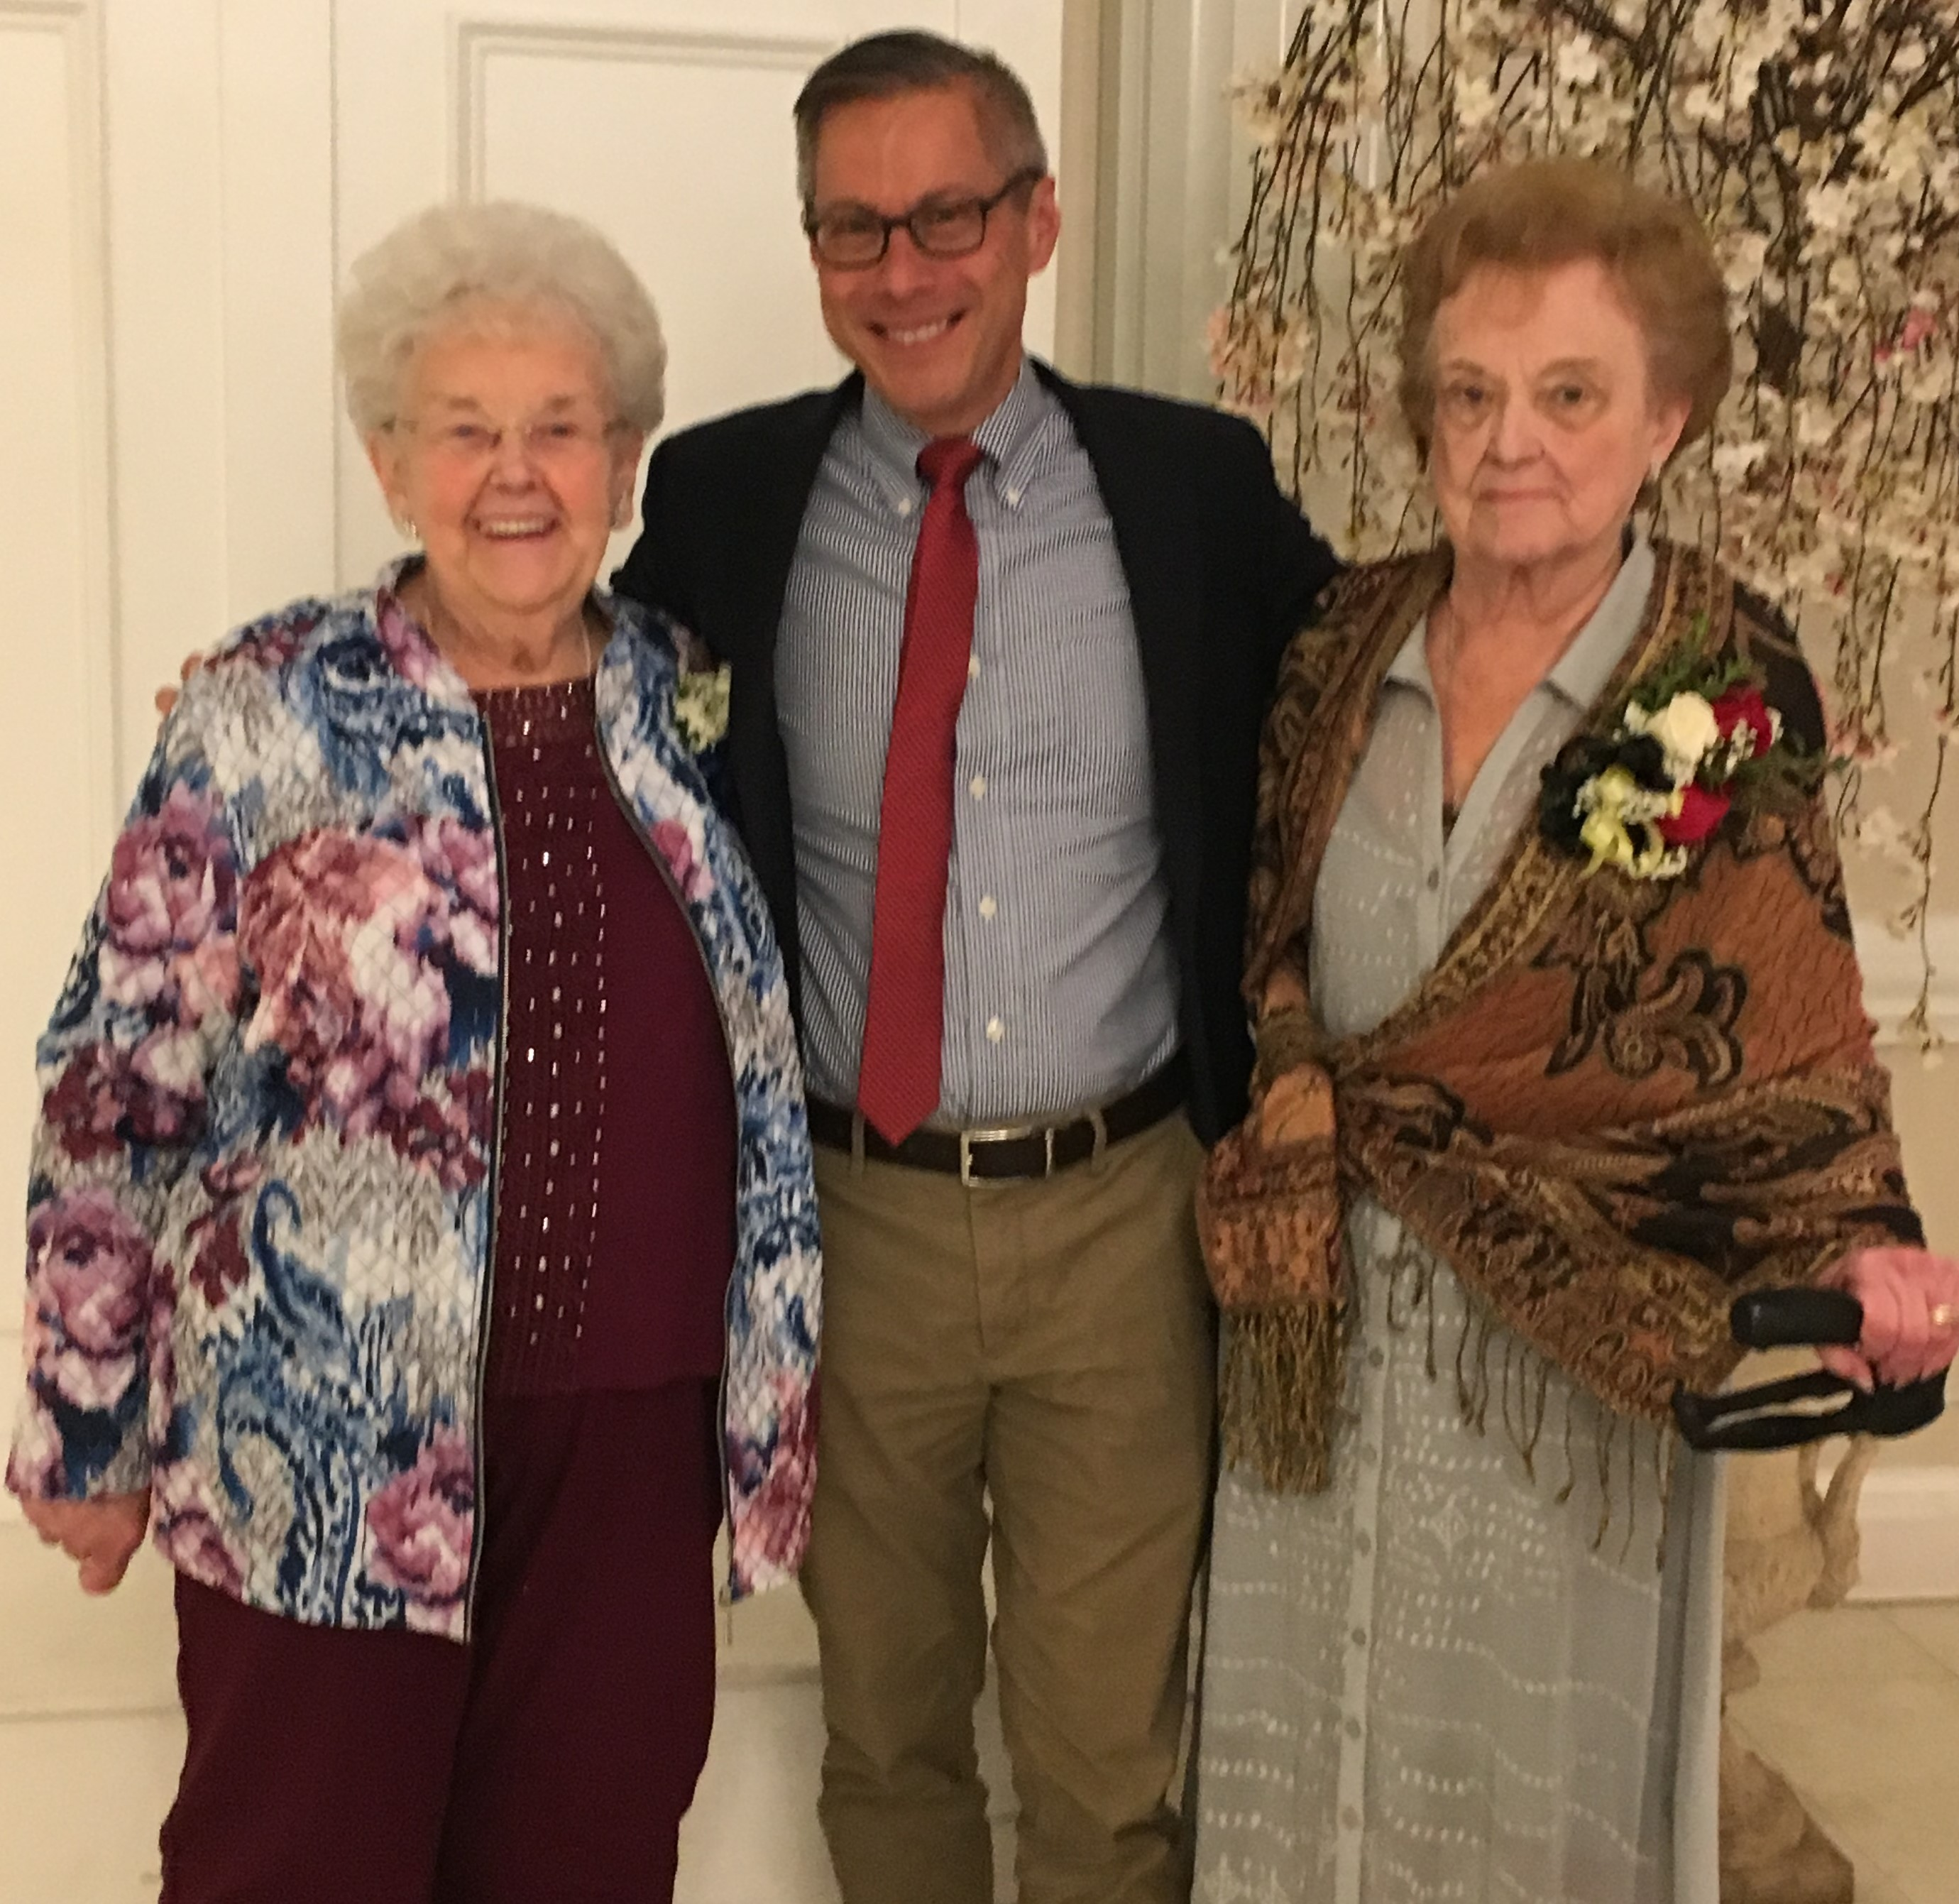 Darlene Koch (L) and Sally Bowerman (R), residents of Oak Crest, were inducted into the Maryland Senior Citizens Hall of Fame for their volunteer service. They are joined by Bill Tian, Associate Executive Director of Oak Crest.